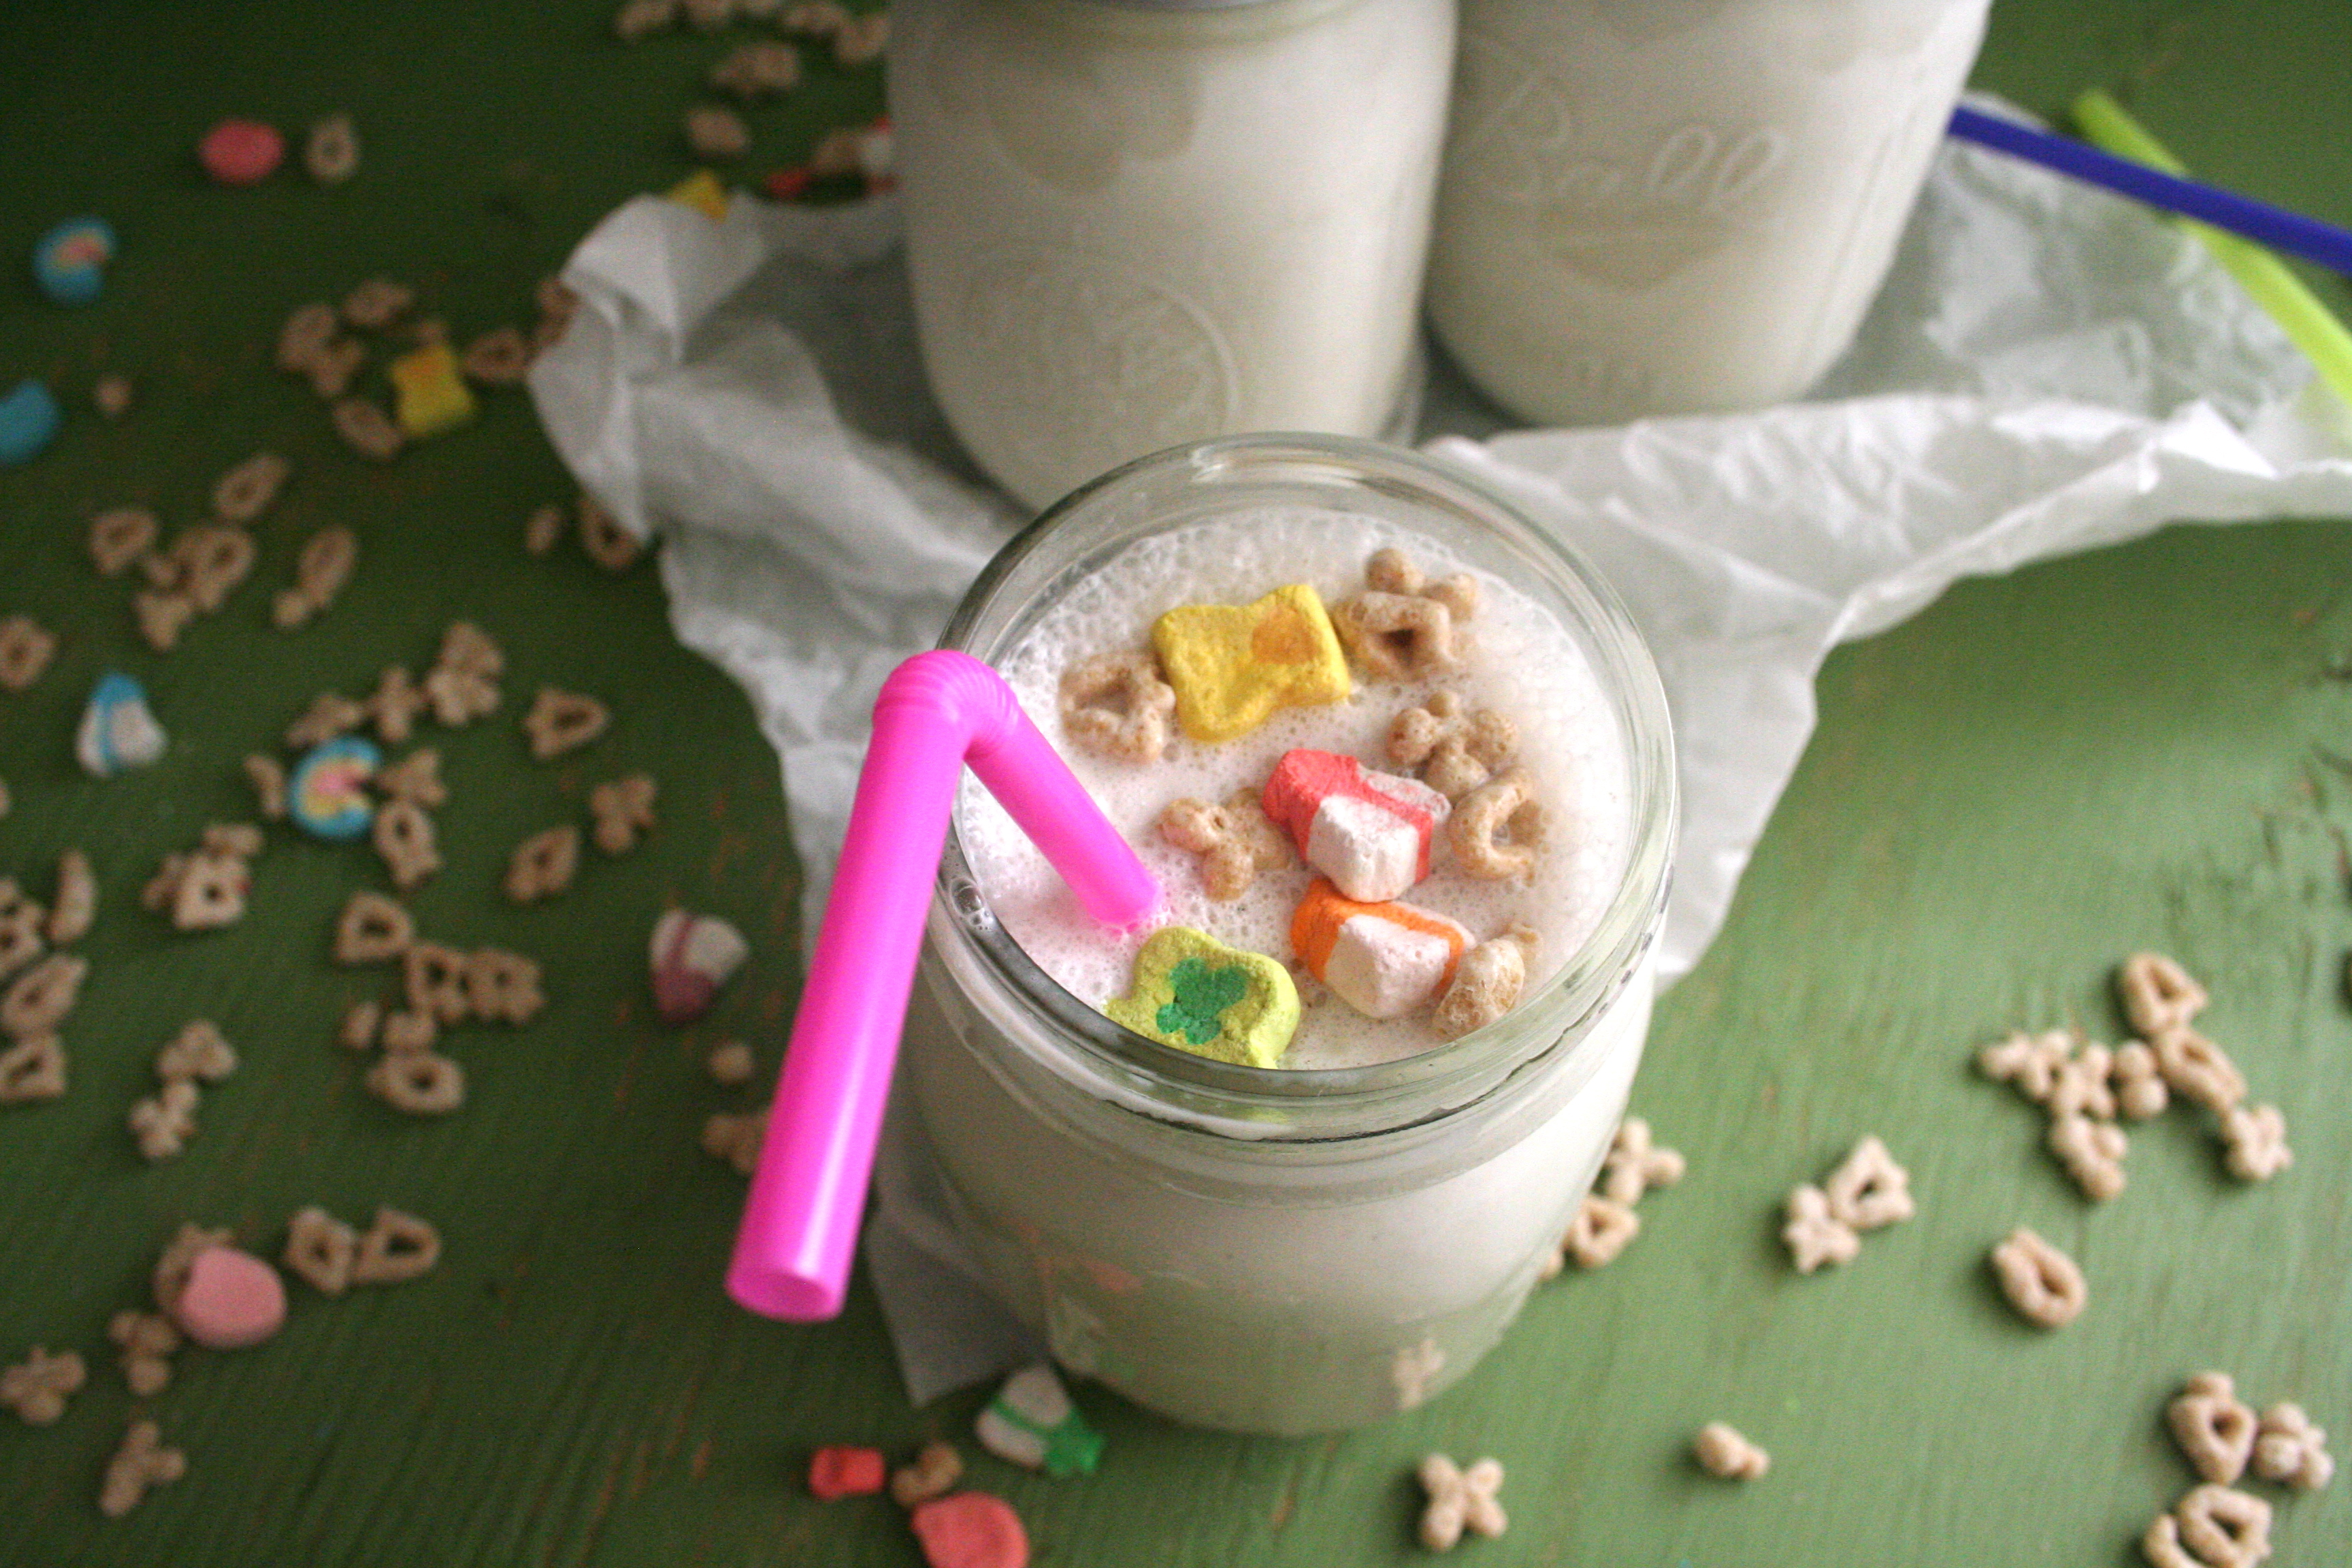 Not quite kid friendly spiked cereal milk shake a few months ago conan had pastry chef christina tosi of momofuku milk bar on the show during the episode she taught conan how to make cereal milk white ccuart Image collections